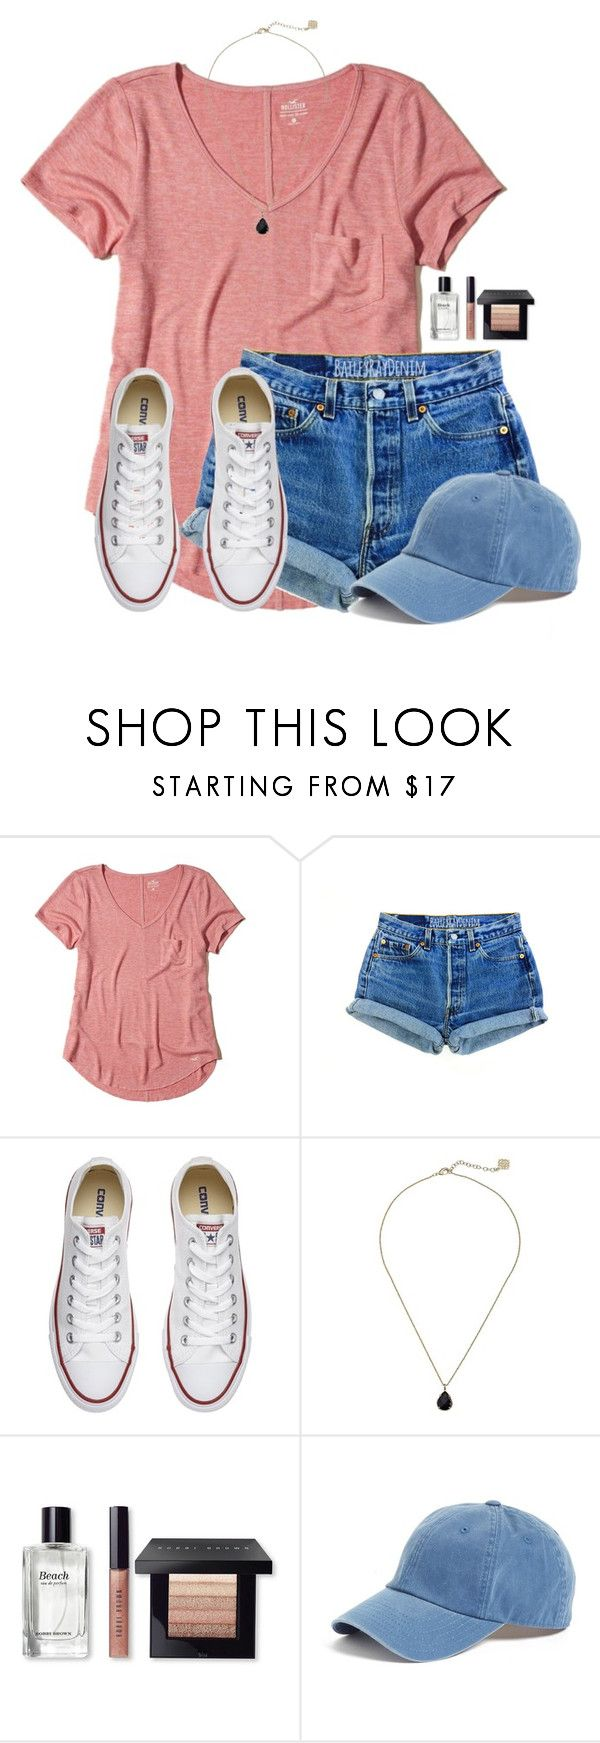 """I really want some pizza:)"" by victoriaann34 on Polyvore featuring Hollister Co., Converse, Kendra Scott, Bobbi Brown Cosmetics and American Needle"